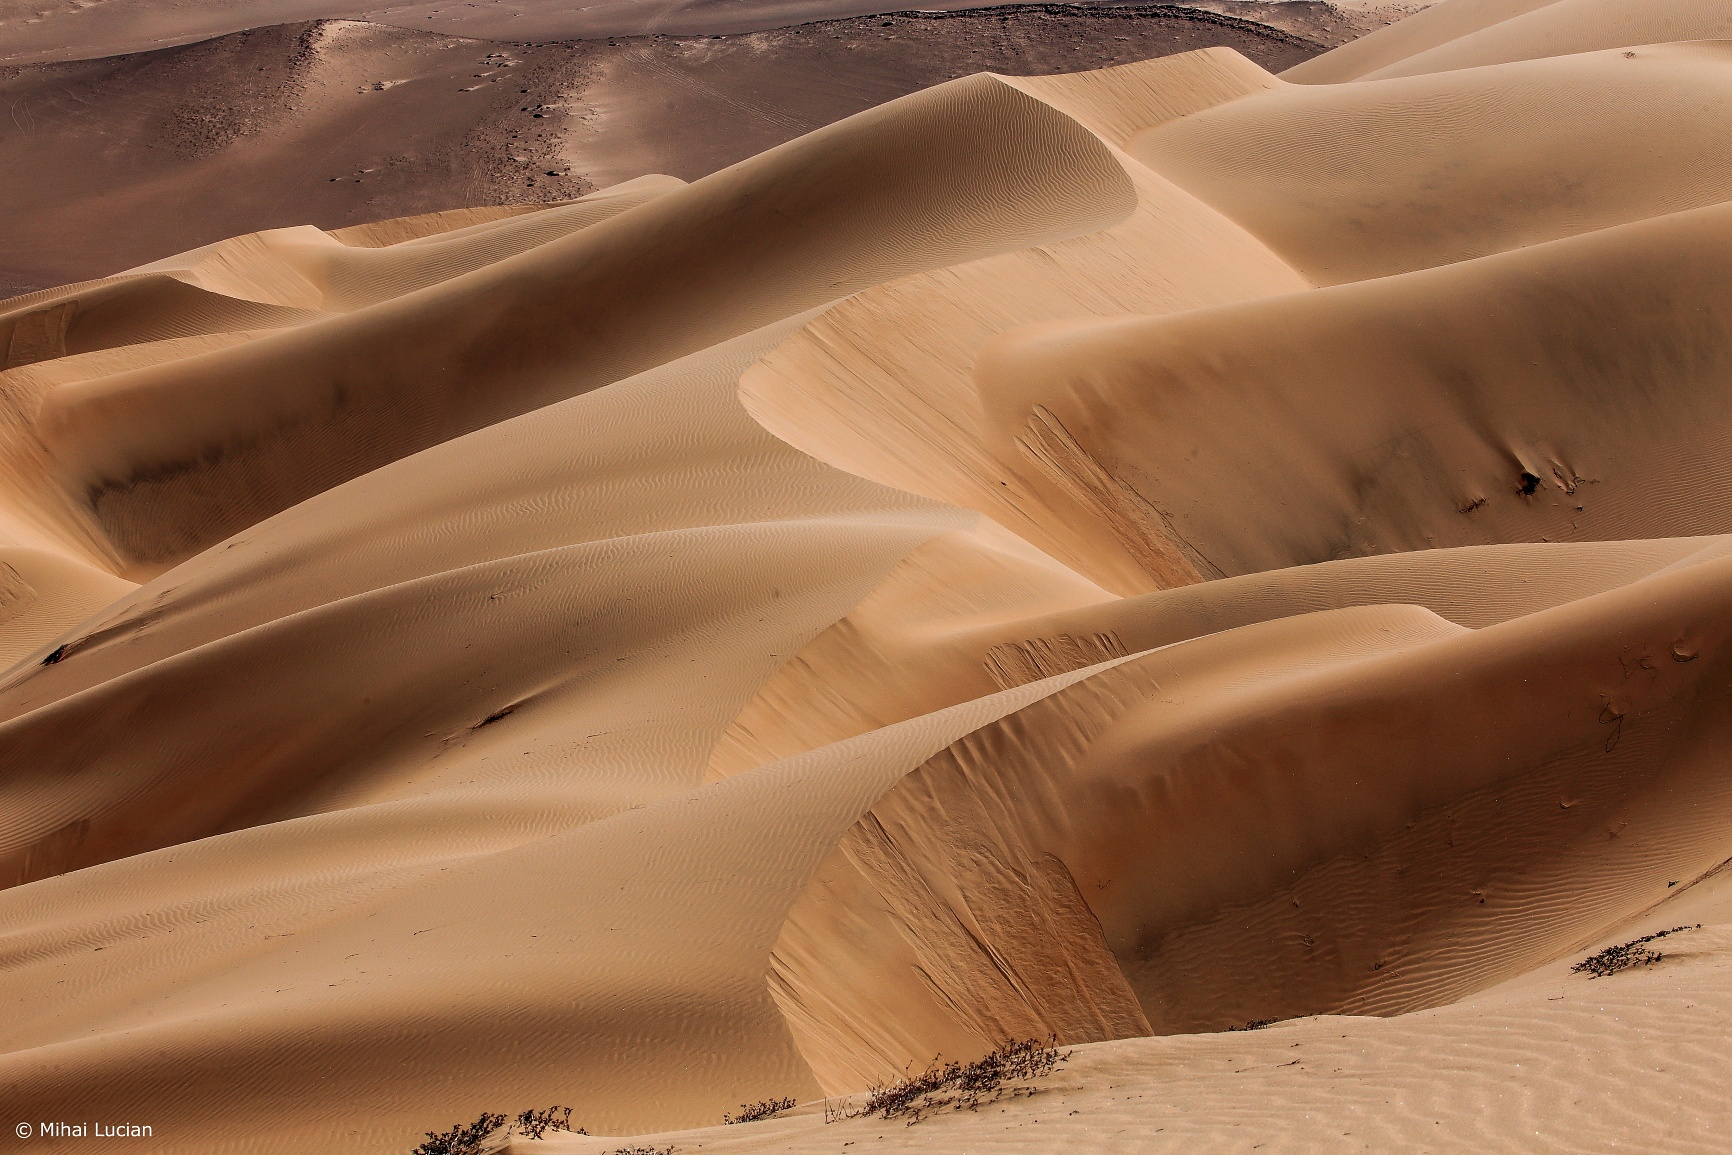 # lacy dunes by Mihai Lucian